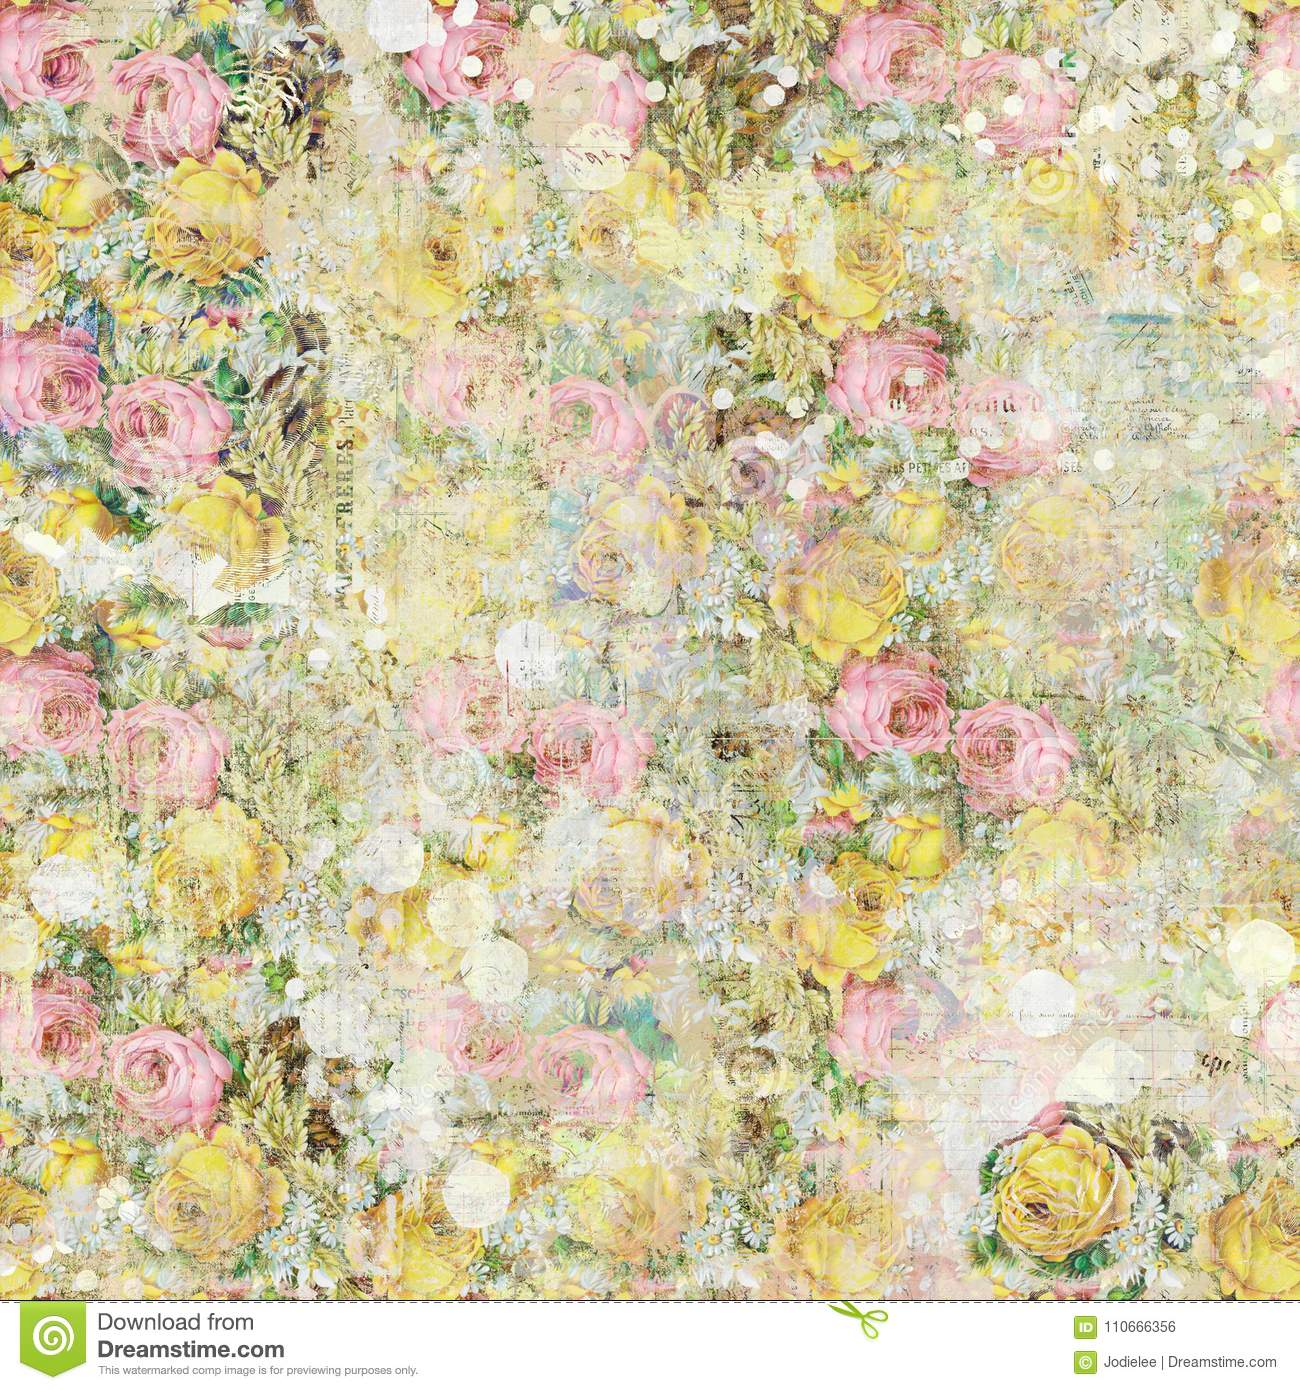 Vintage shabby painted floral roses background seamless pattern